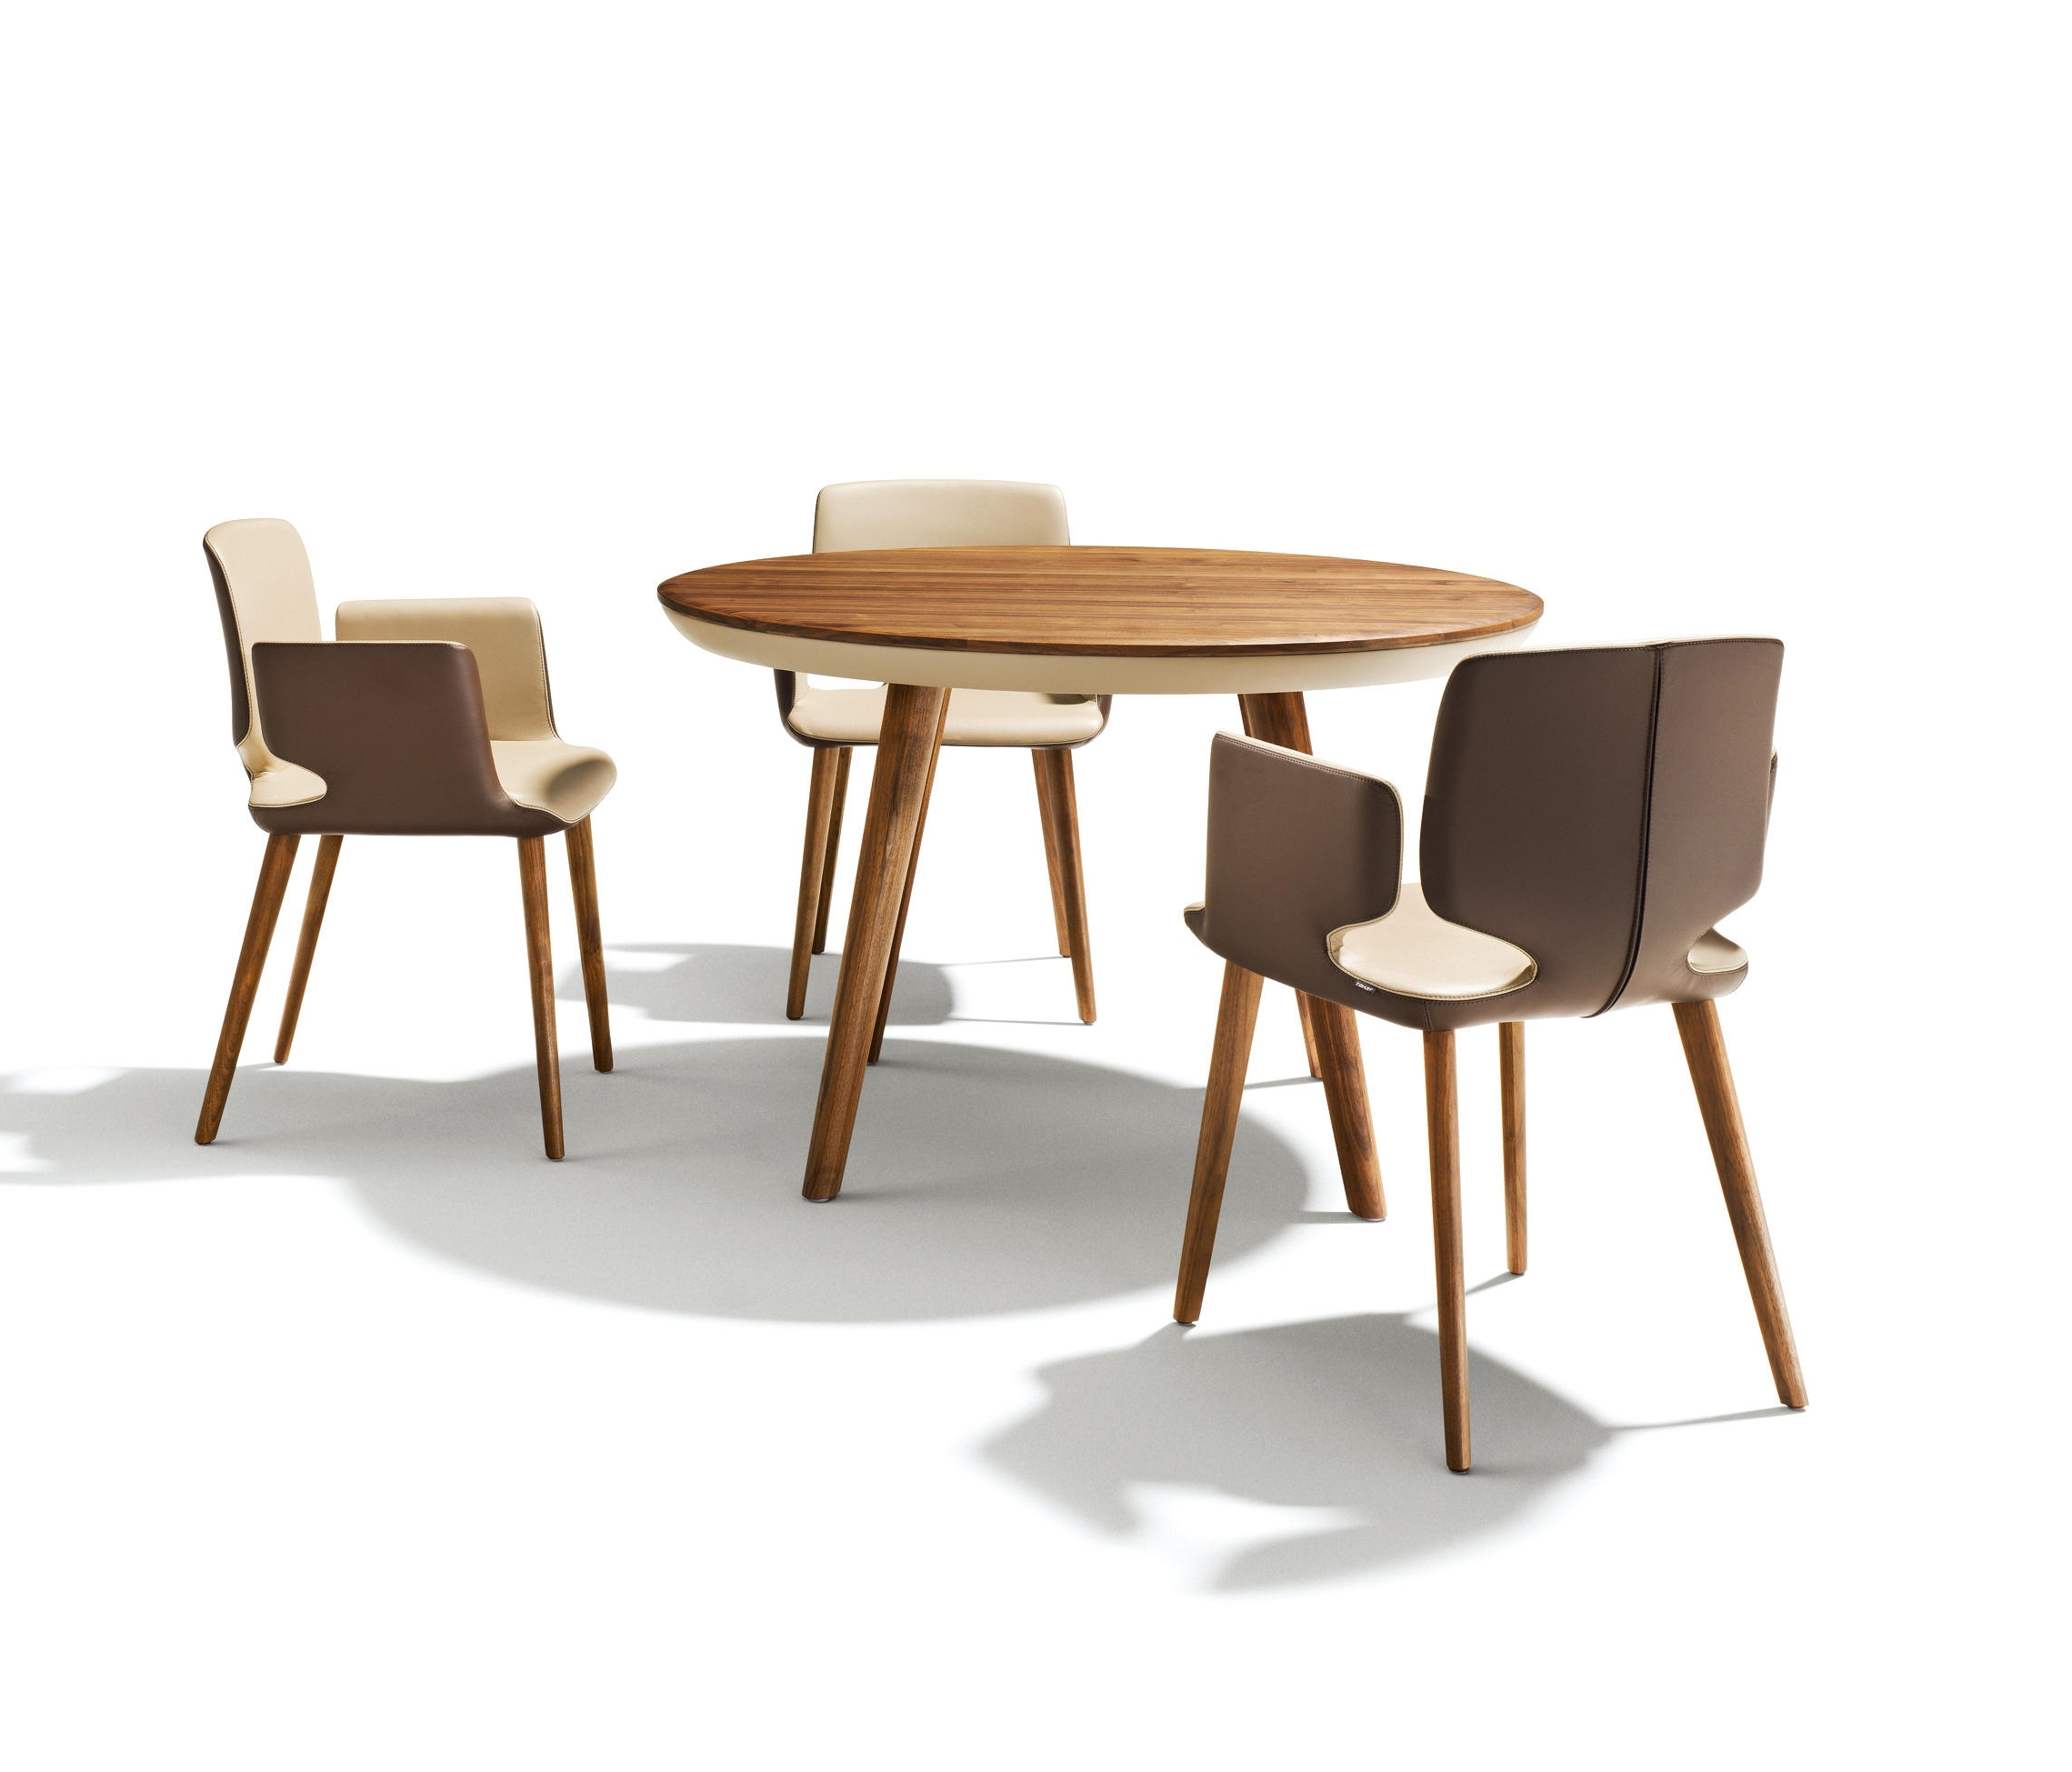 Architonic Intended For Non Wood Dining Tables (View 2 of 25)